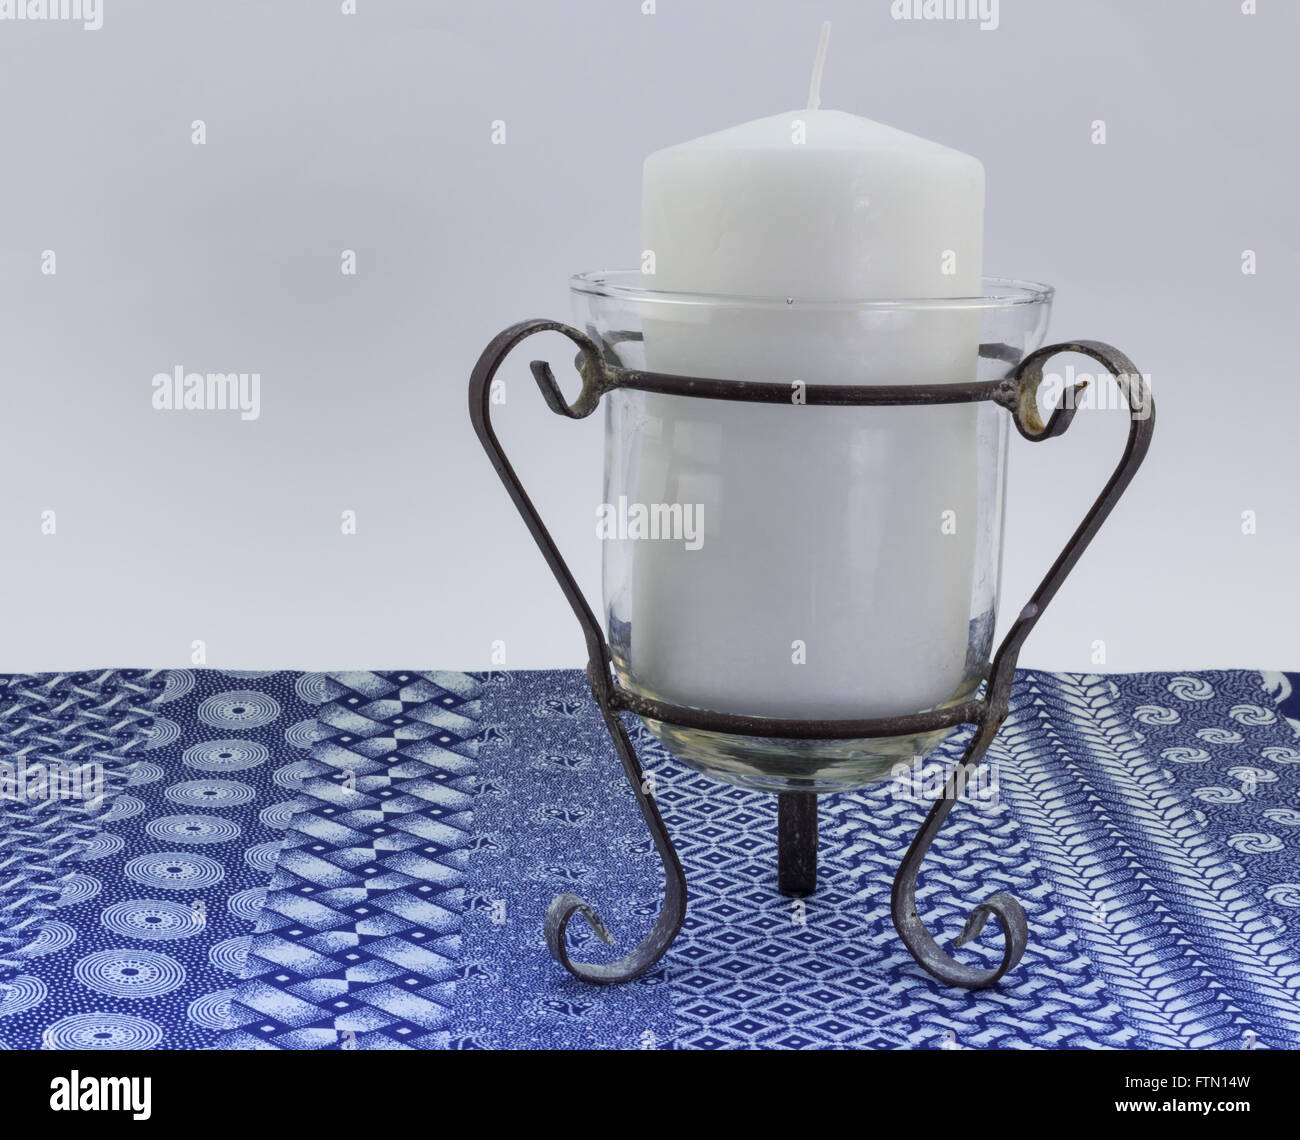 Close up of one white unlit candle against white and blue linen print background - Stock Image